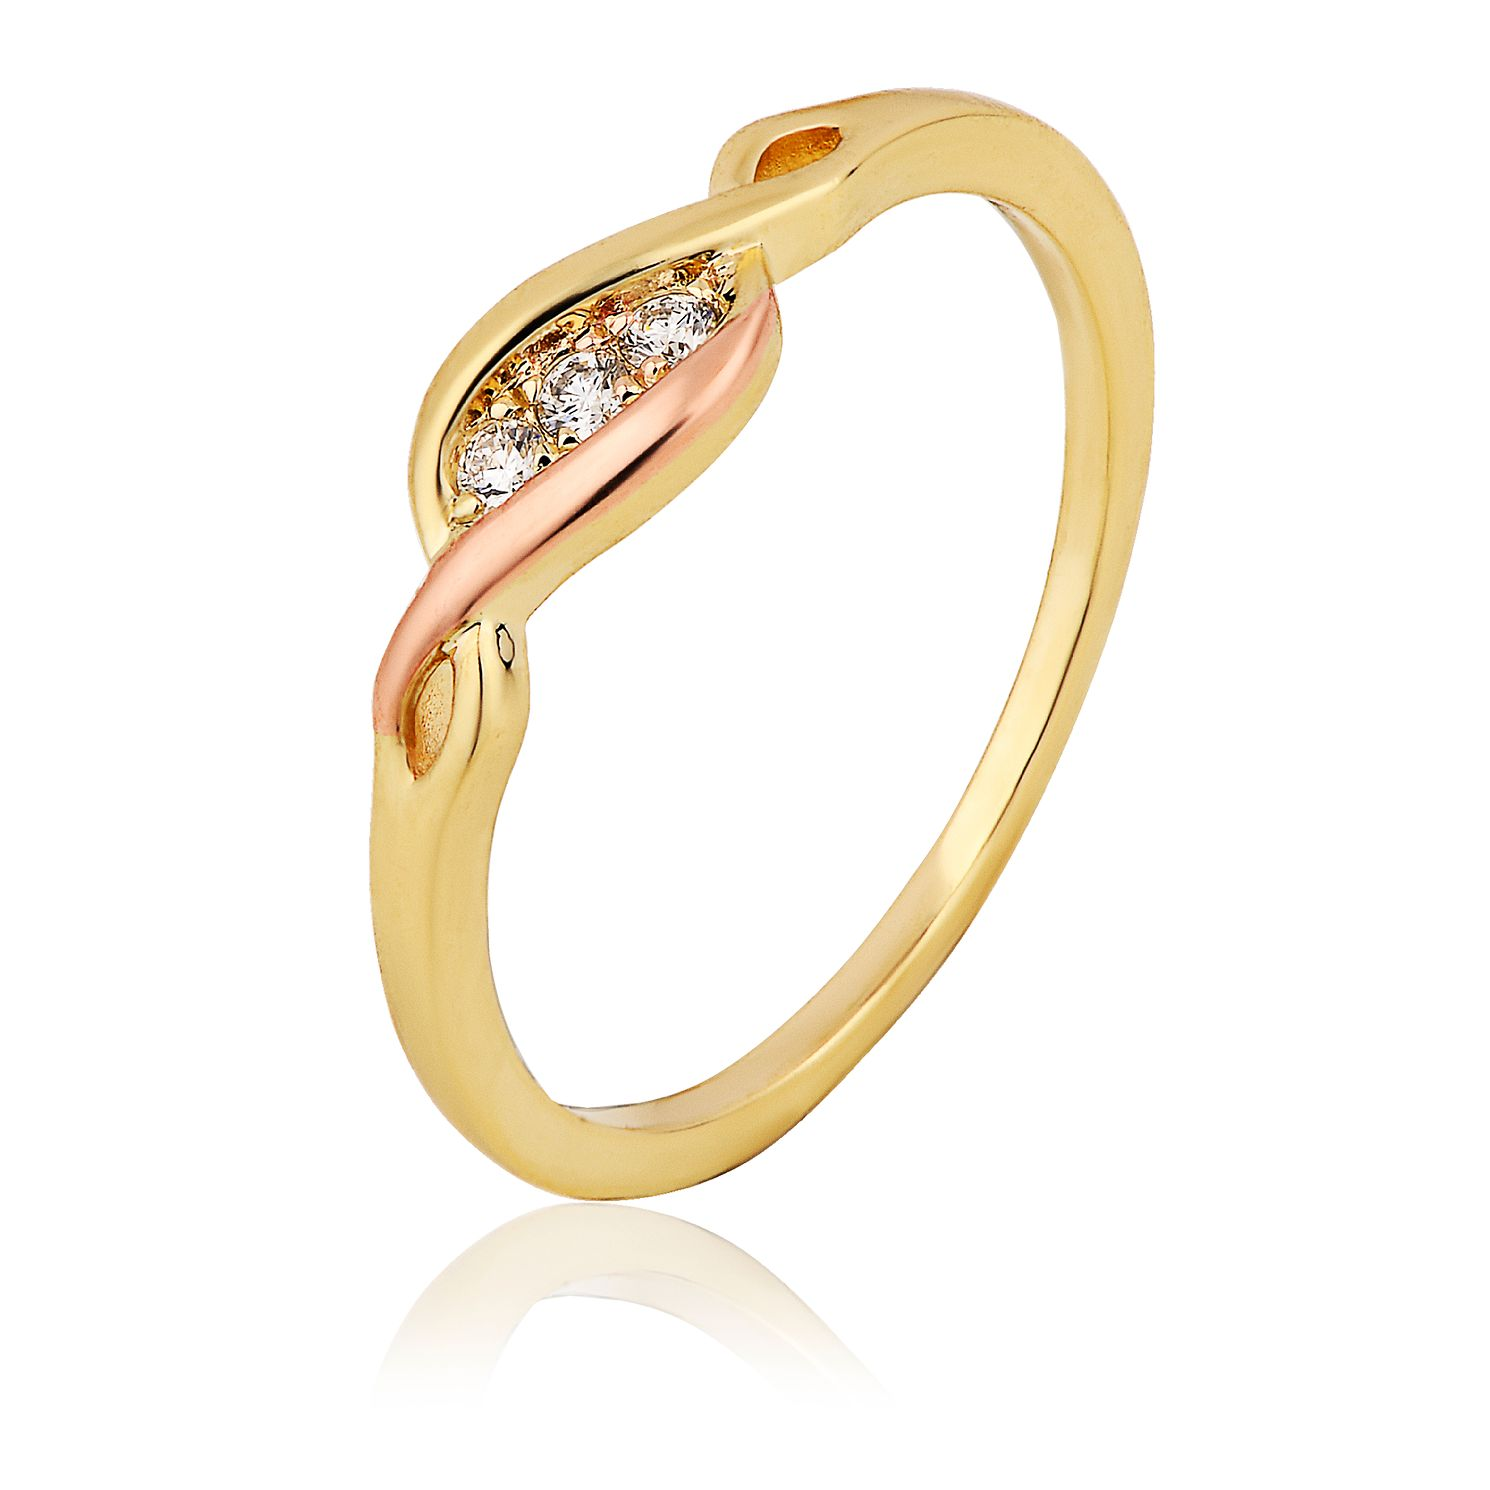 Clogau 9ct Gold Past Present Future Diamond Ring - Product number 8423156